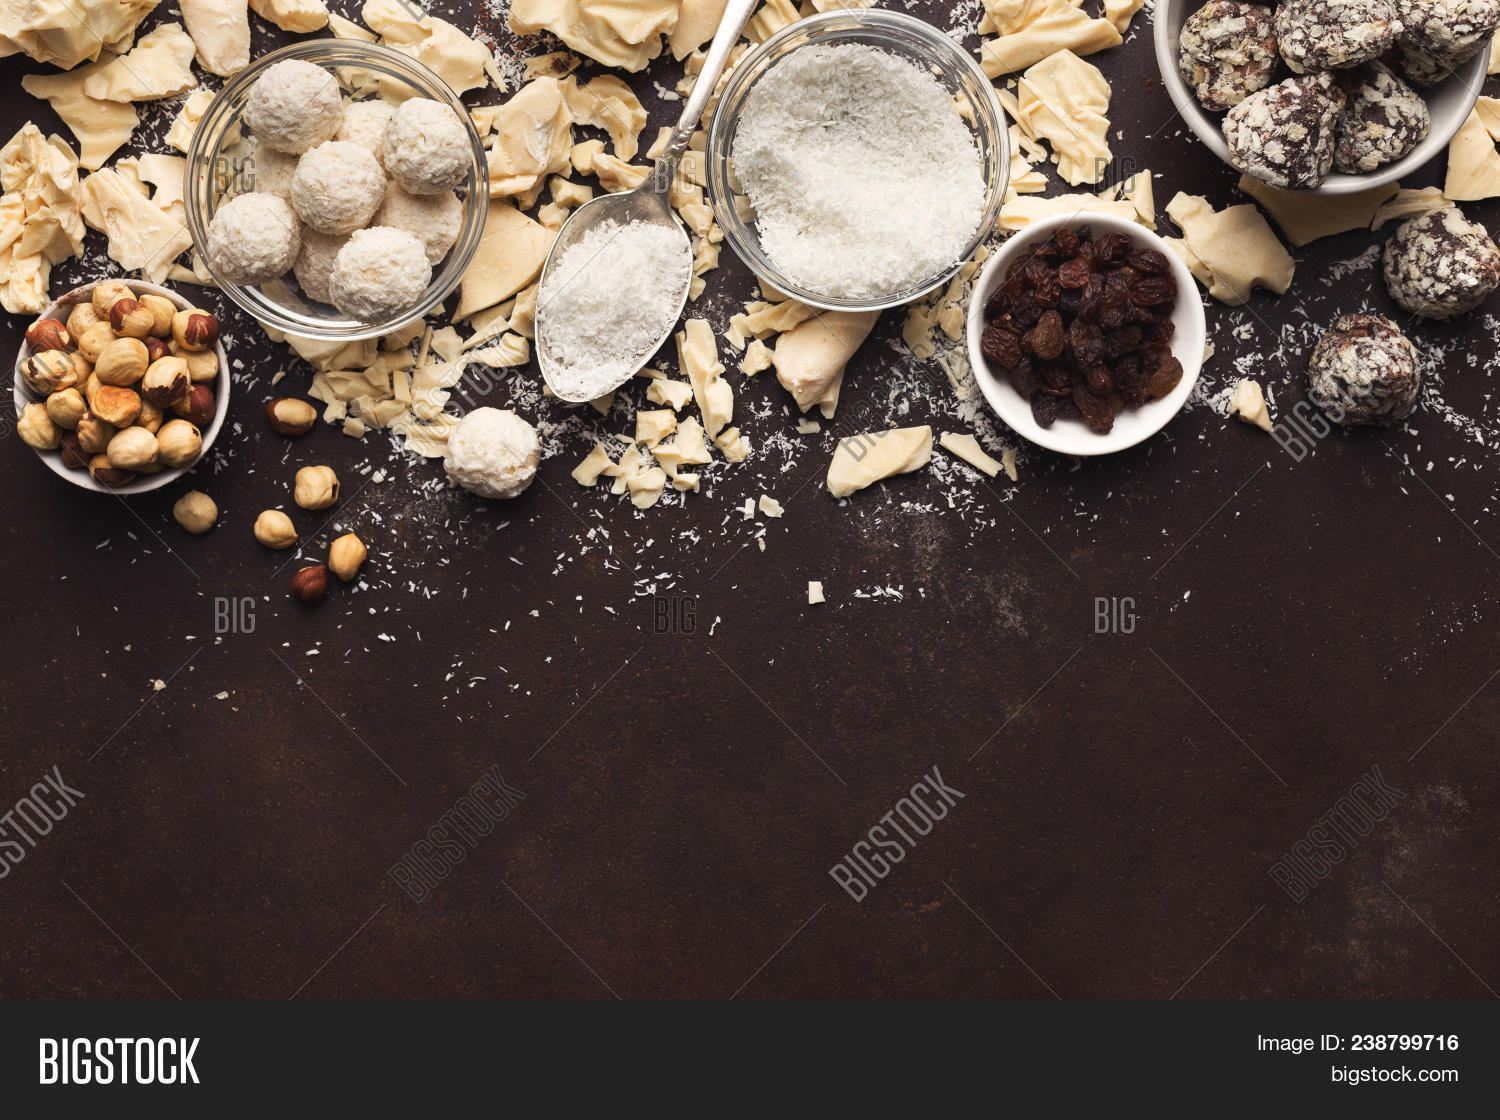 advertising,anise,background,banner,bar,bitter,border,broken,brown,candy,chocolate,chunk,coconut,concept,confectionery,cooking,copy,crushed,dark,dessert,diet,eat,energy,filling,food,frame,gourmet,handmade,homemade,ingredient,milk,mockup,piece,powder,raisin,recipe,shop,slice,snack,space,spice,stuffing,sugar,sweet,top,truffle,view,wallpaper,white